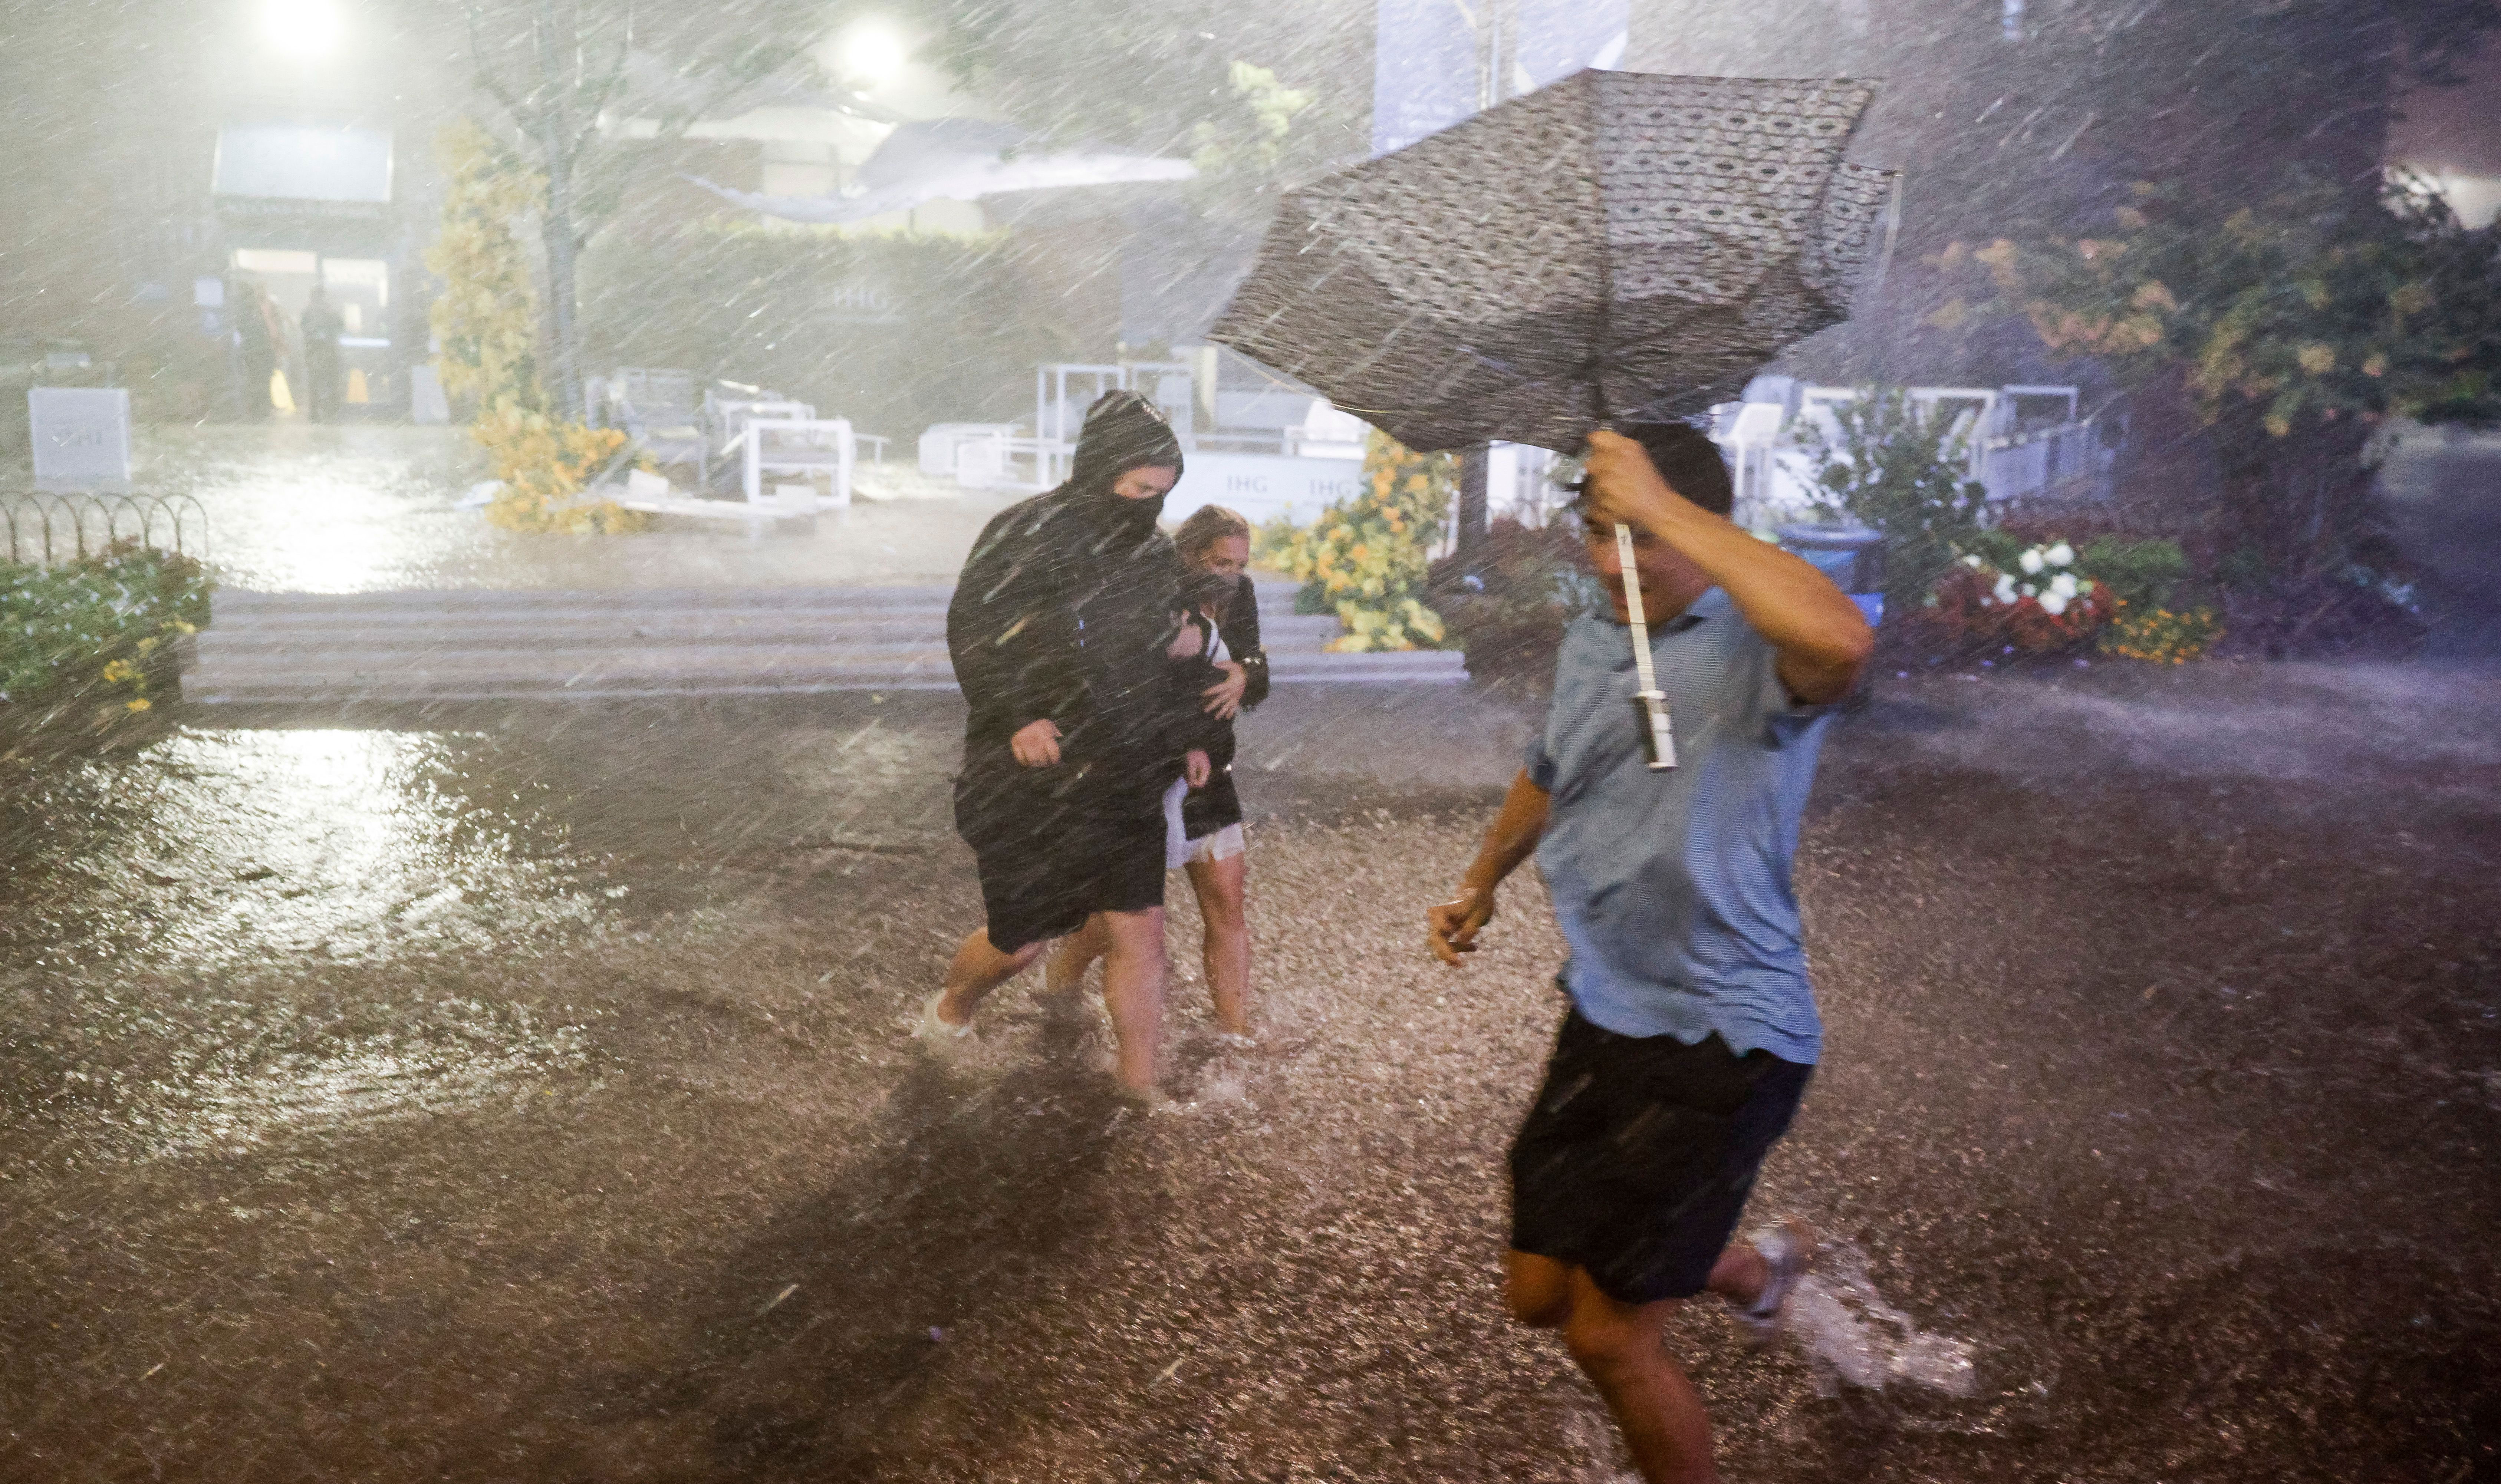 People navigate heavy rains and flooded walkways at the Billie Jean King National Tennis Center in Queens, New York, on September 1.